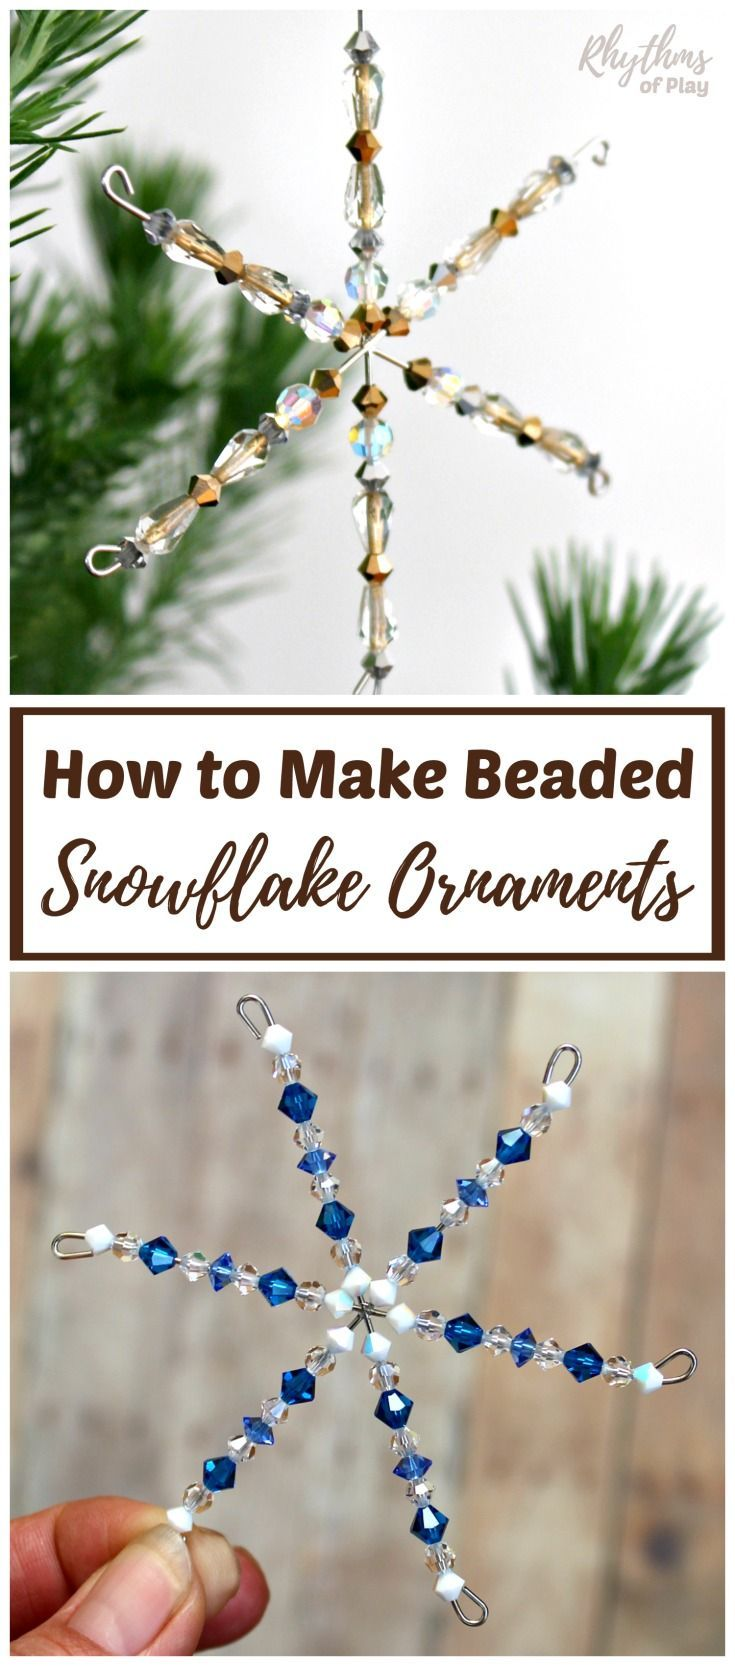 How To Make Beaded Snowflake Ornaments Video Tutorial Rop Beaded Snowflakes Beaded Snowflakes Ornament Easy Winter Crafts